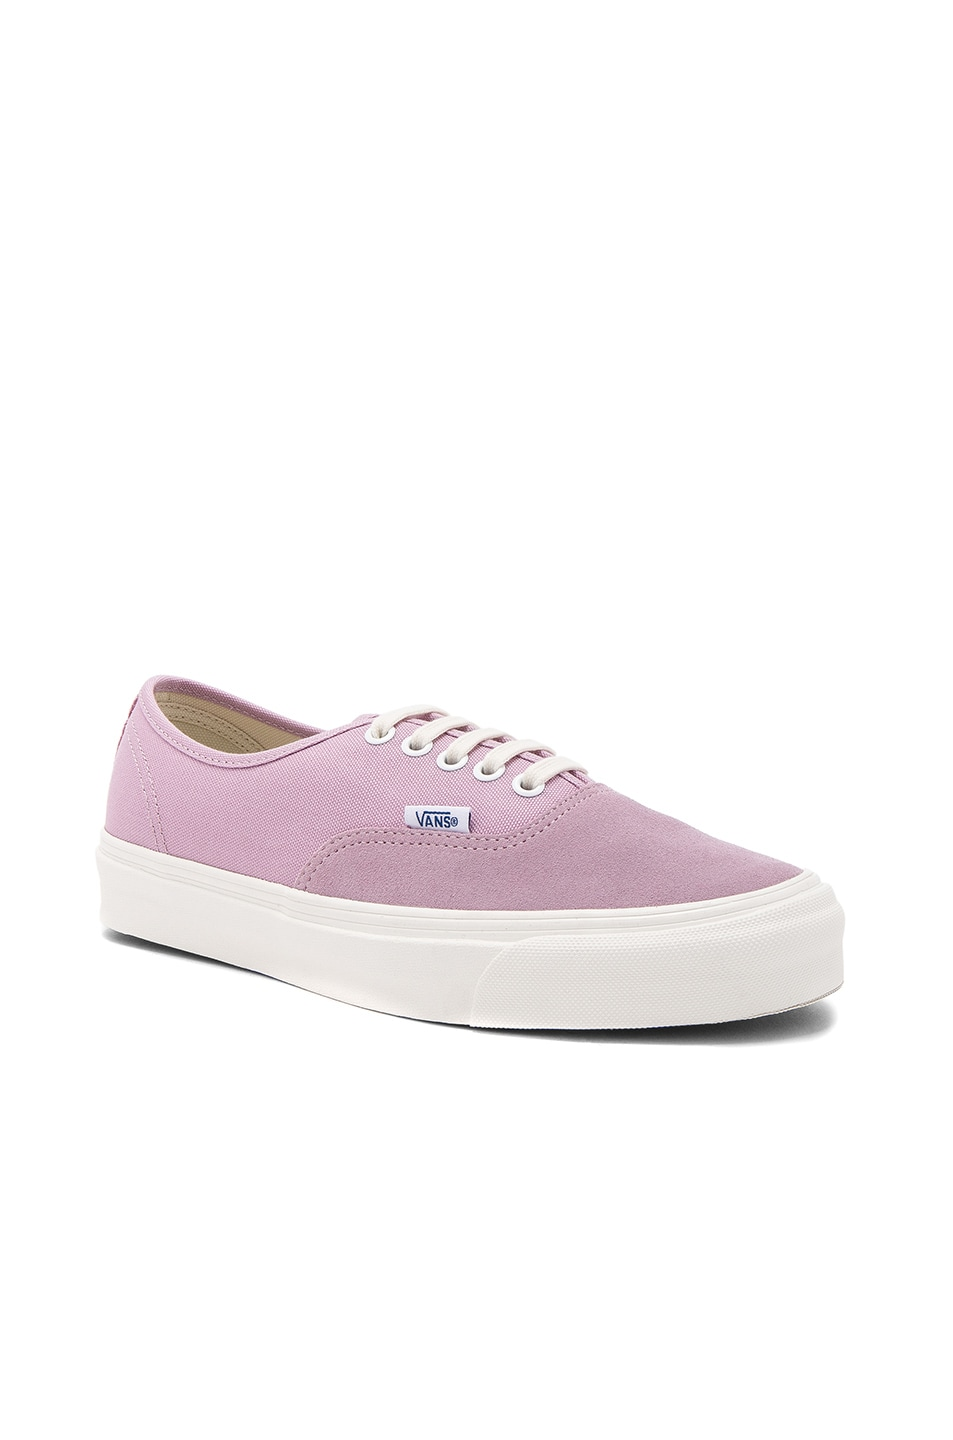 a6ae20d4e7 Image 1 of Vans Vault Canvas OG Authentic LX in Fragrant Lilac